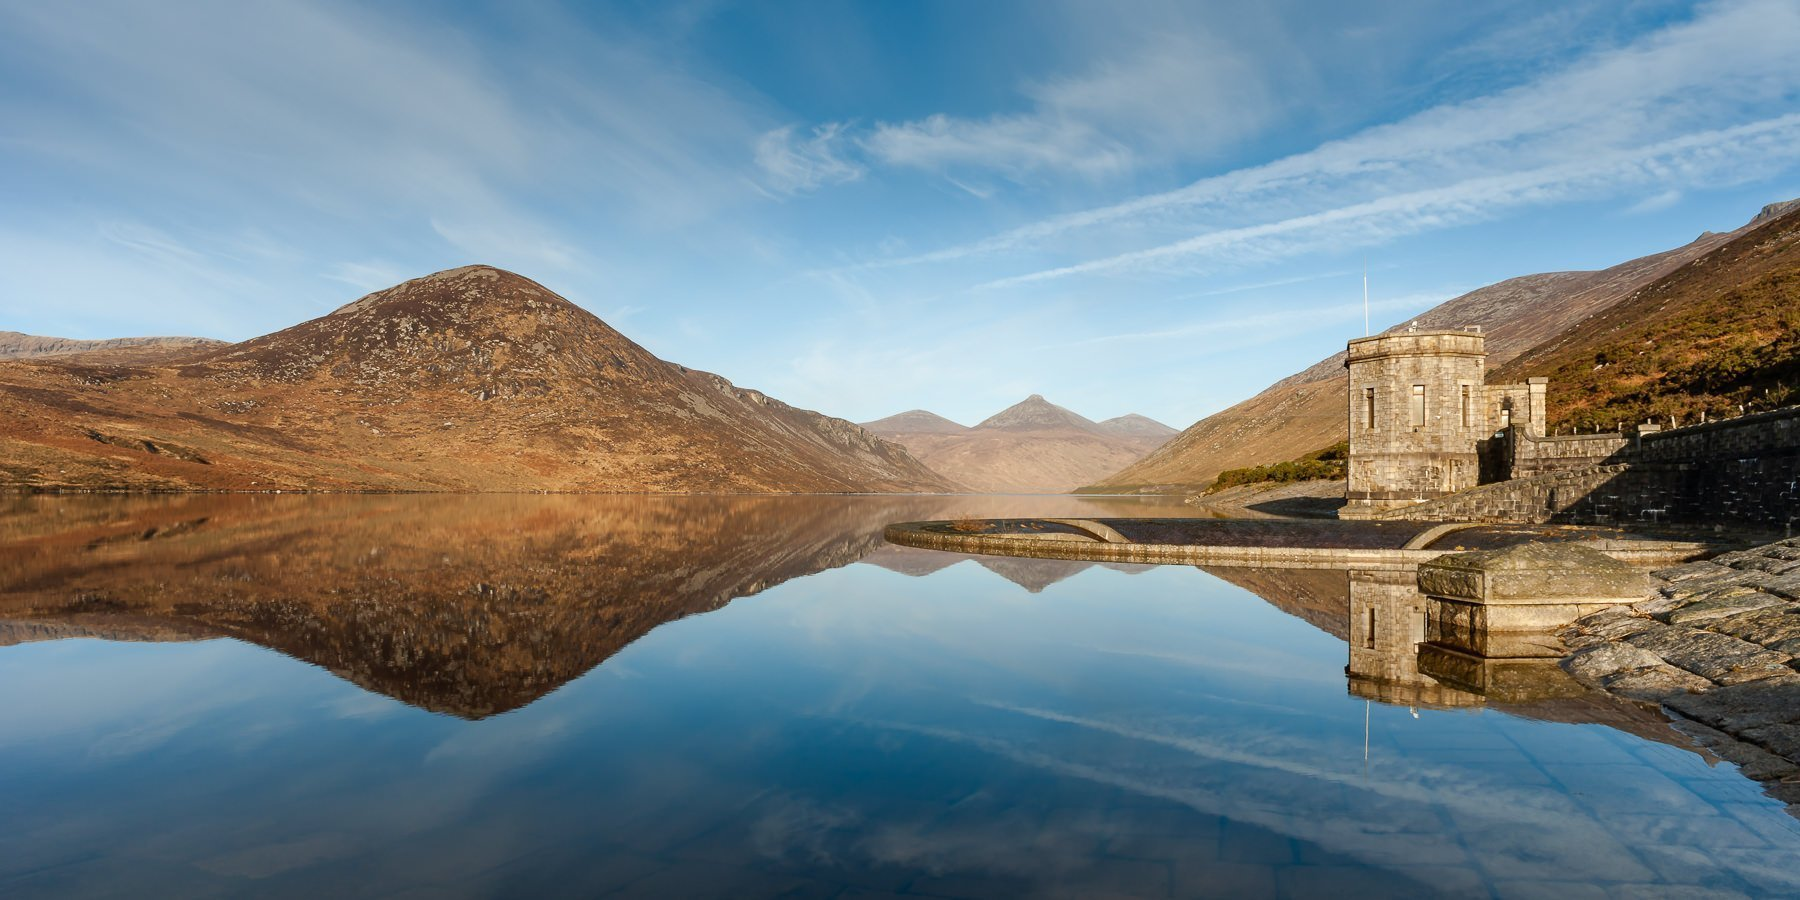 Silent Valley reservoir Co Down Northern Ireland, reflection of the Mourne Mountains on the still water